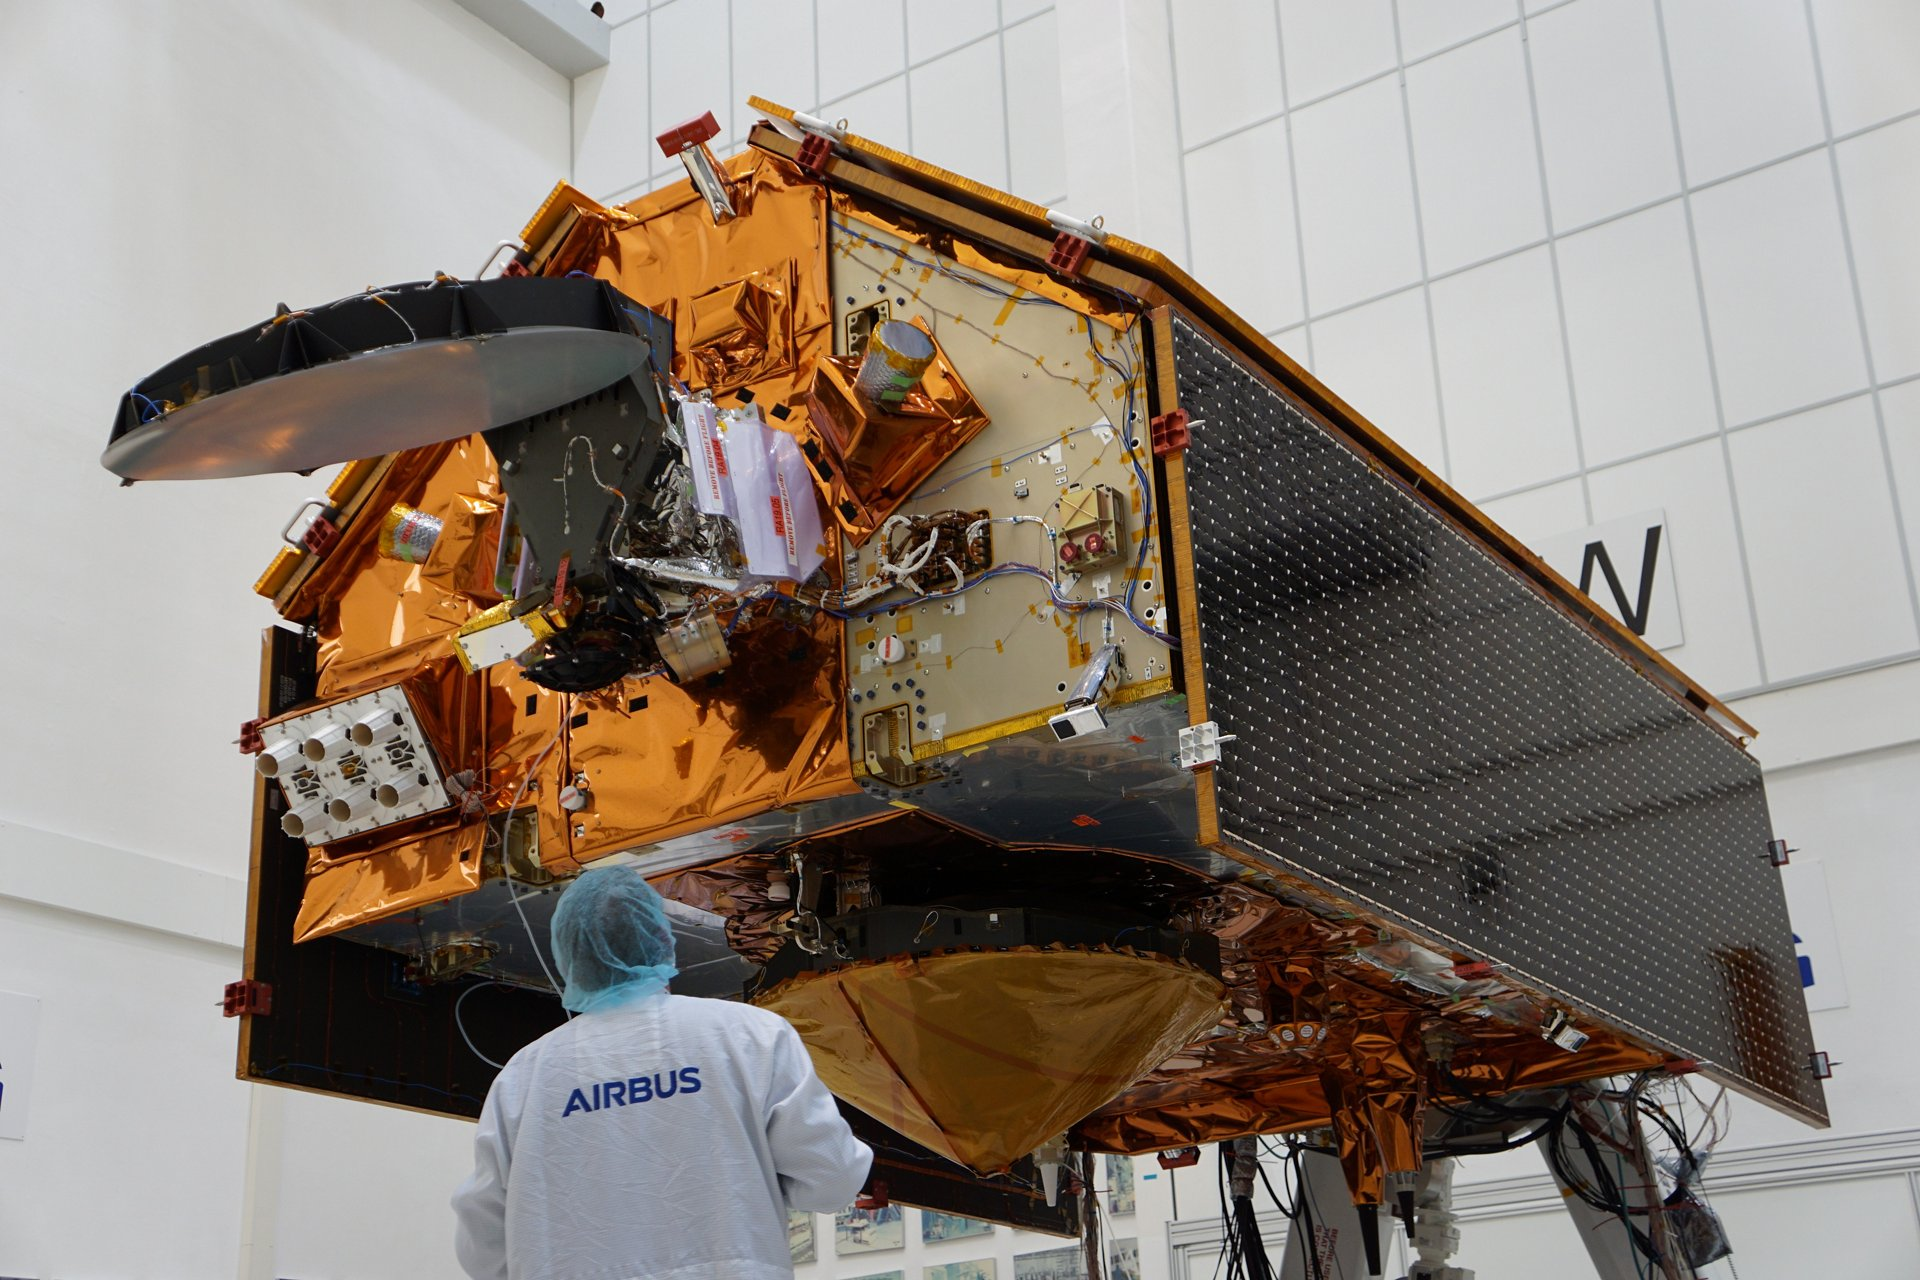 Airbus space engineers are currently testing the Copernicus Sentinel-6A satellite at the Space Test Centre of Industrieanlagen-Betriebsgesellschaft mbH (IABG) in Ottobrunn - near Munich - to prove its readiness for space.